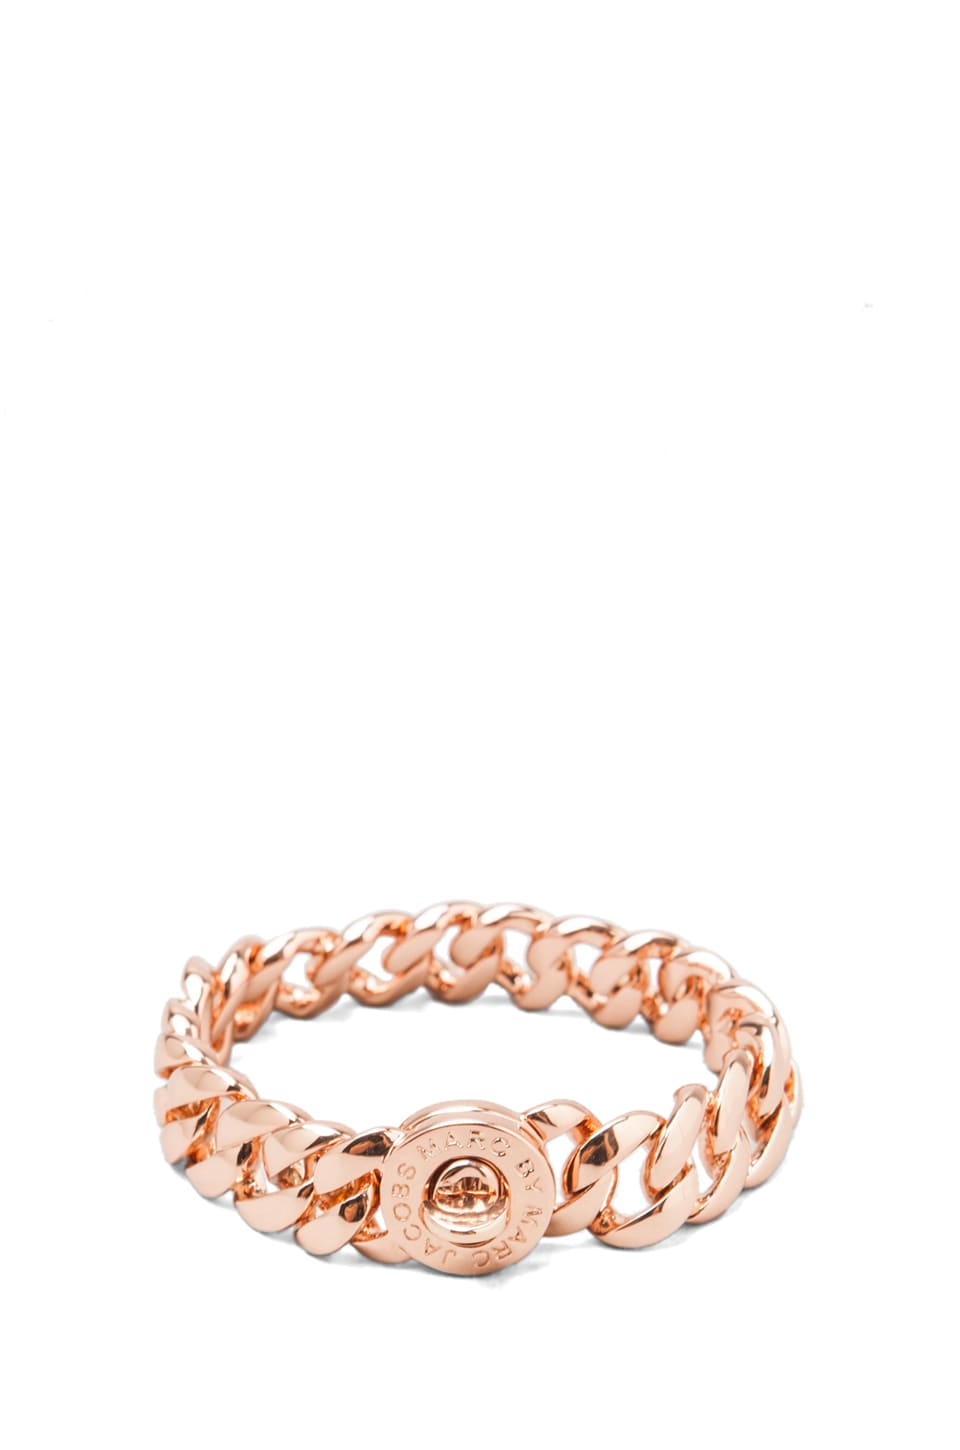 Marc by Marc Jacobs Small Katie Turn-lock Bracelet in Rose Gold